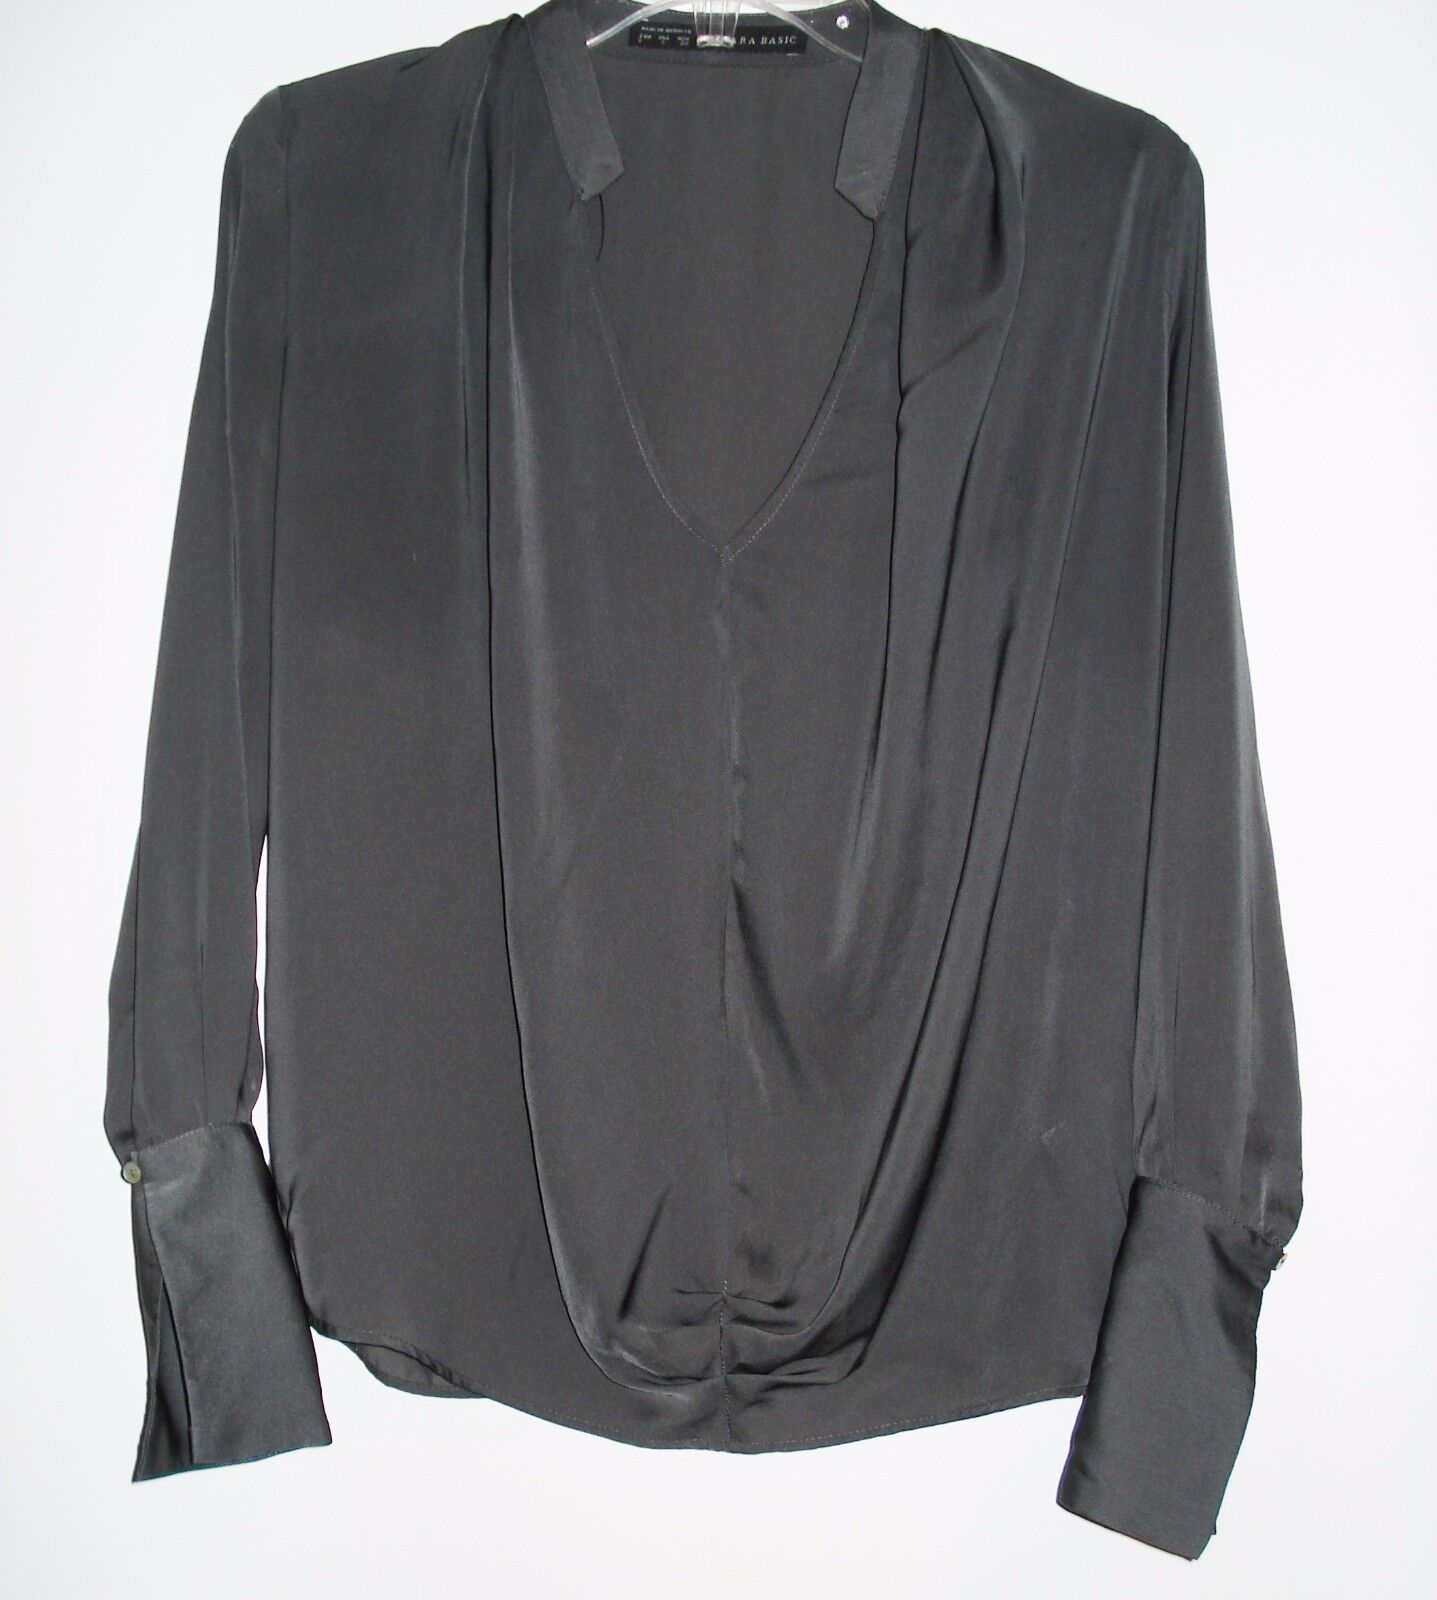 ZARA COLLECTION Dark Chocolate BLOUSE Long Sleeve TOP S